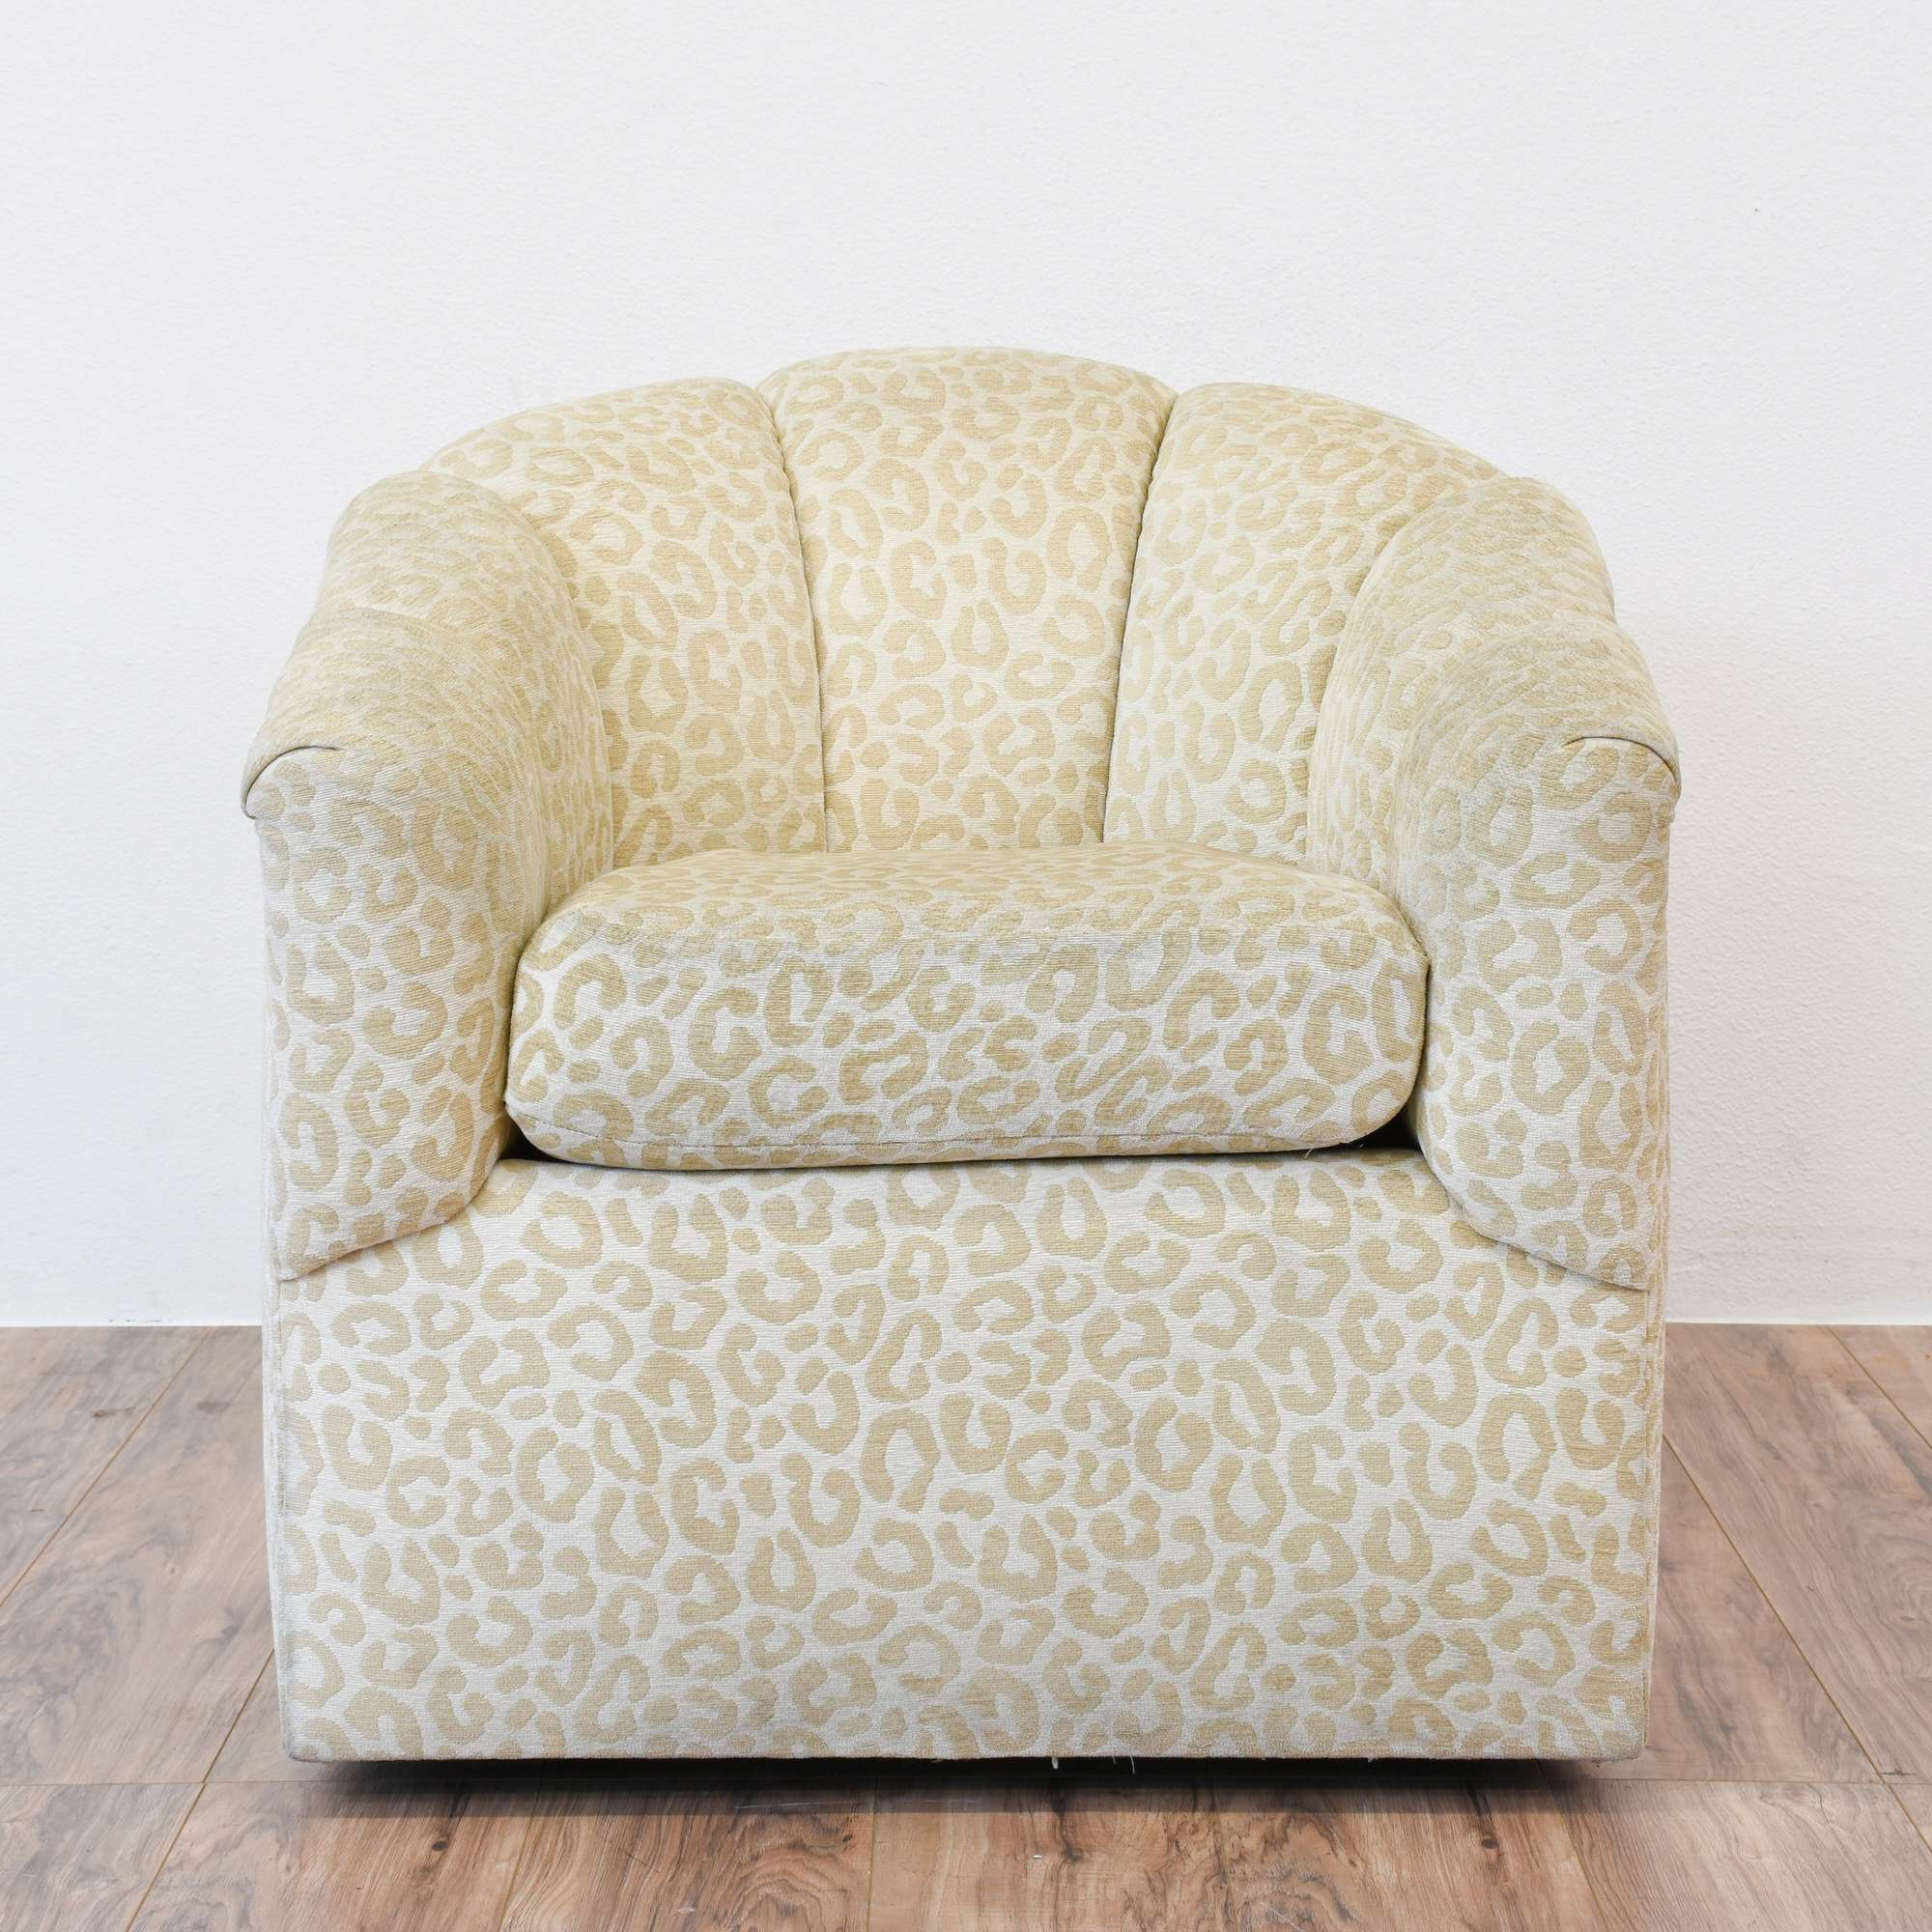 Neutral Beige Leopard Print Fan Back Armchair | Loveseat Vintage ...